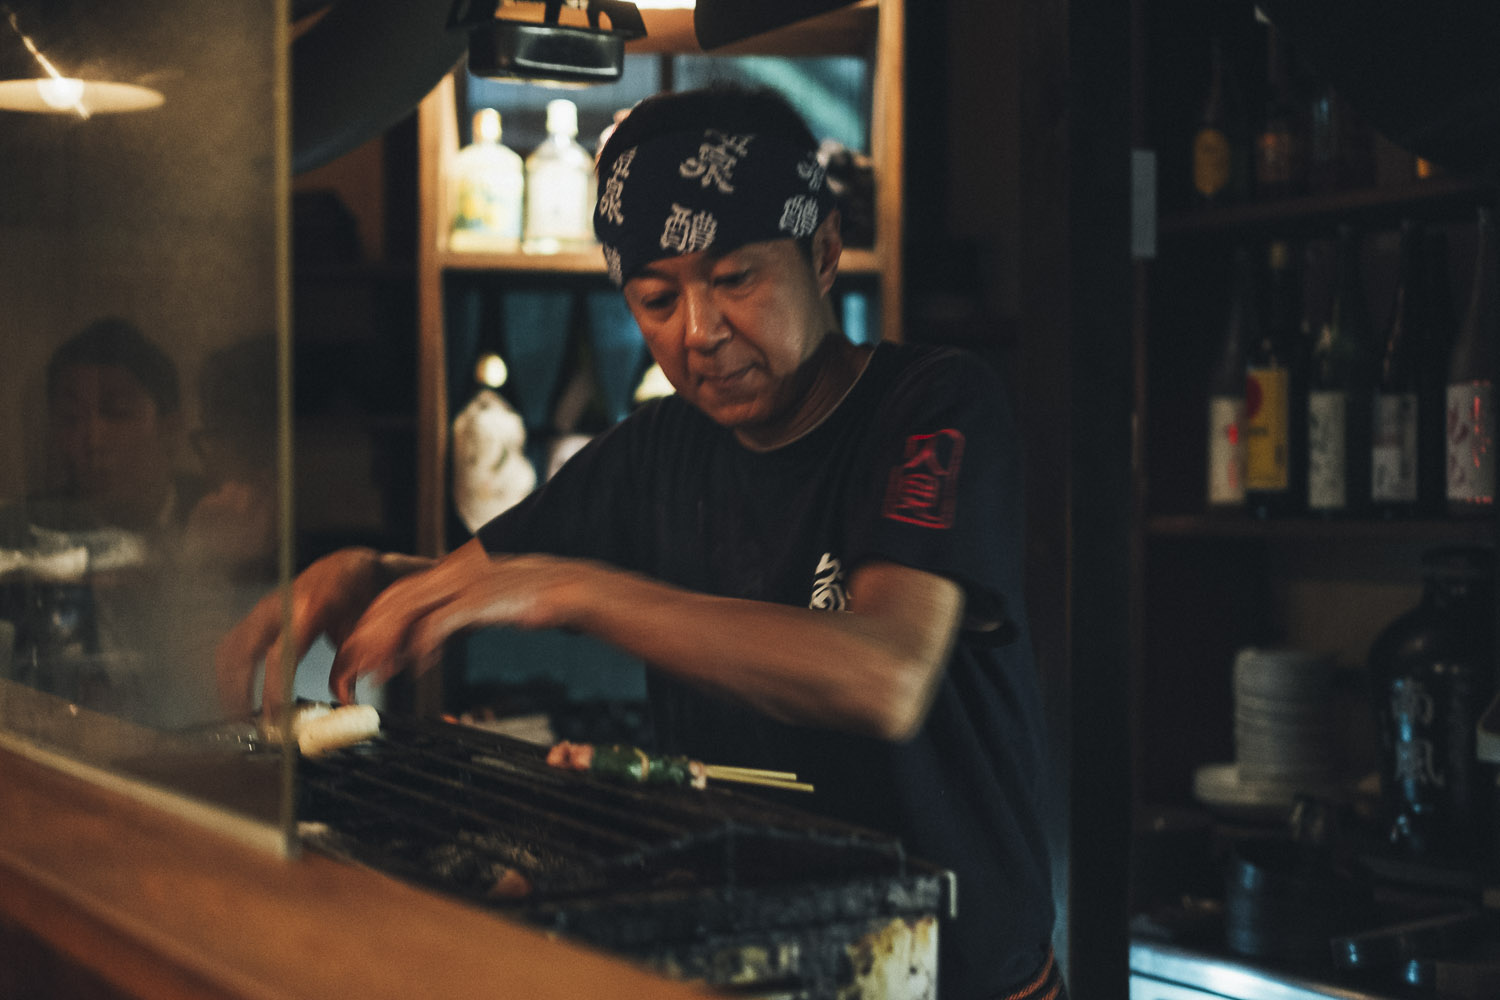 The owner of Hitomi in Kyoto doing his thing.